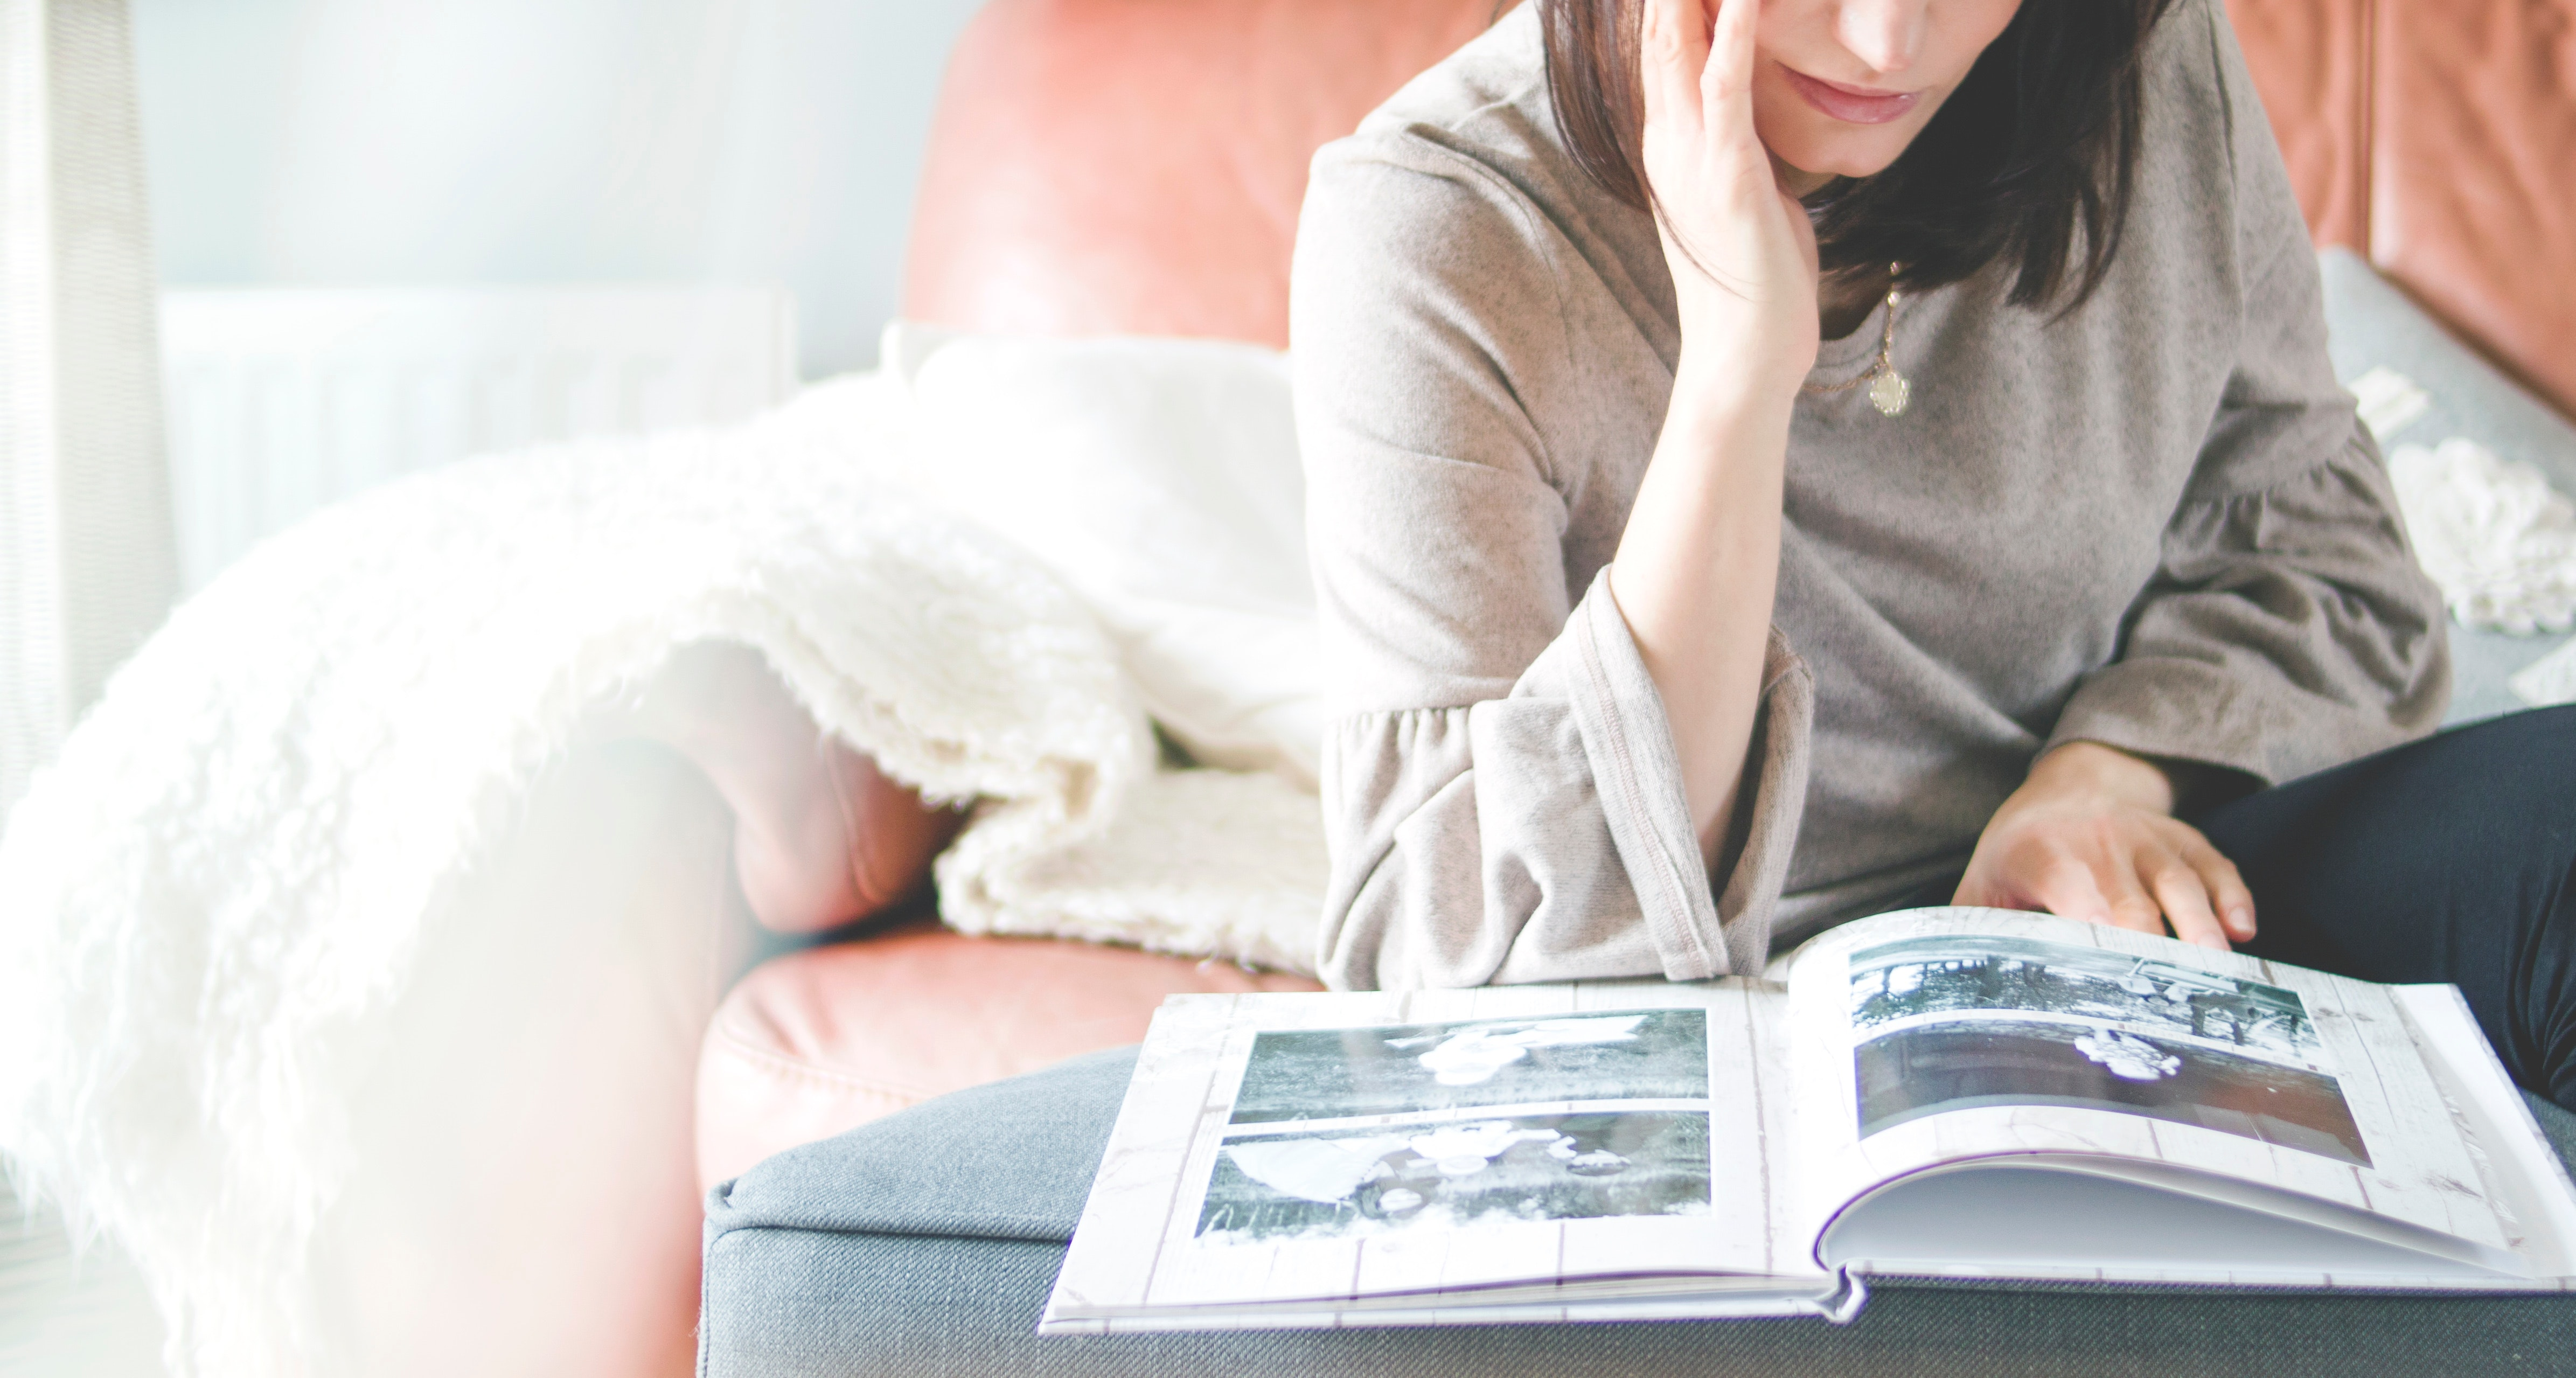 Woman sitting on a couch looking at a photo album